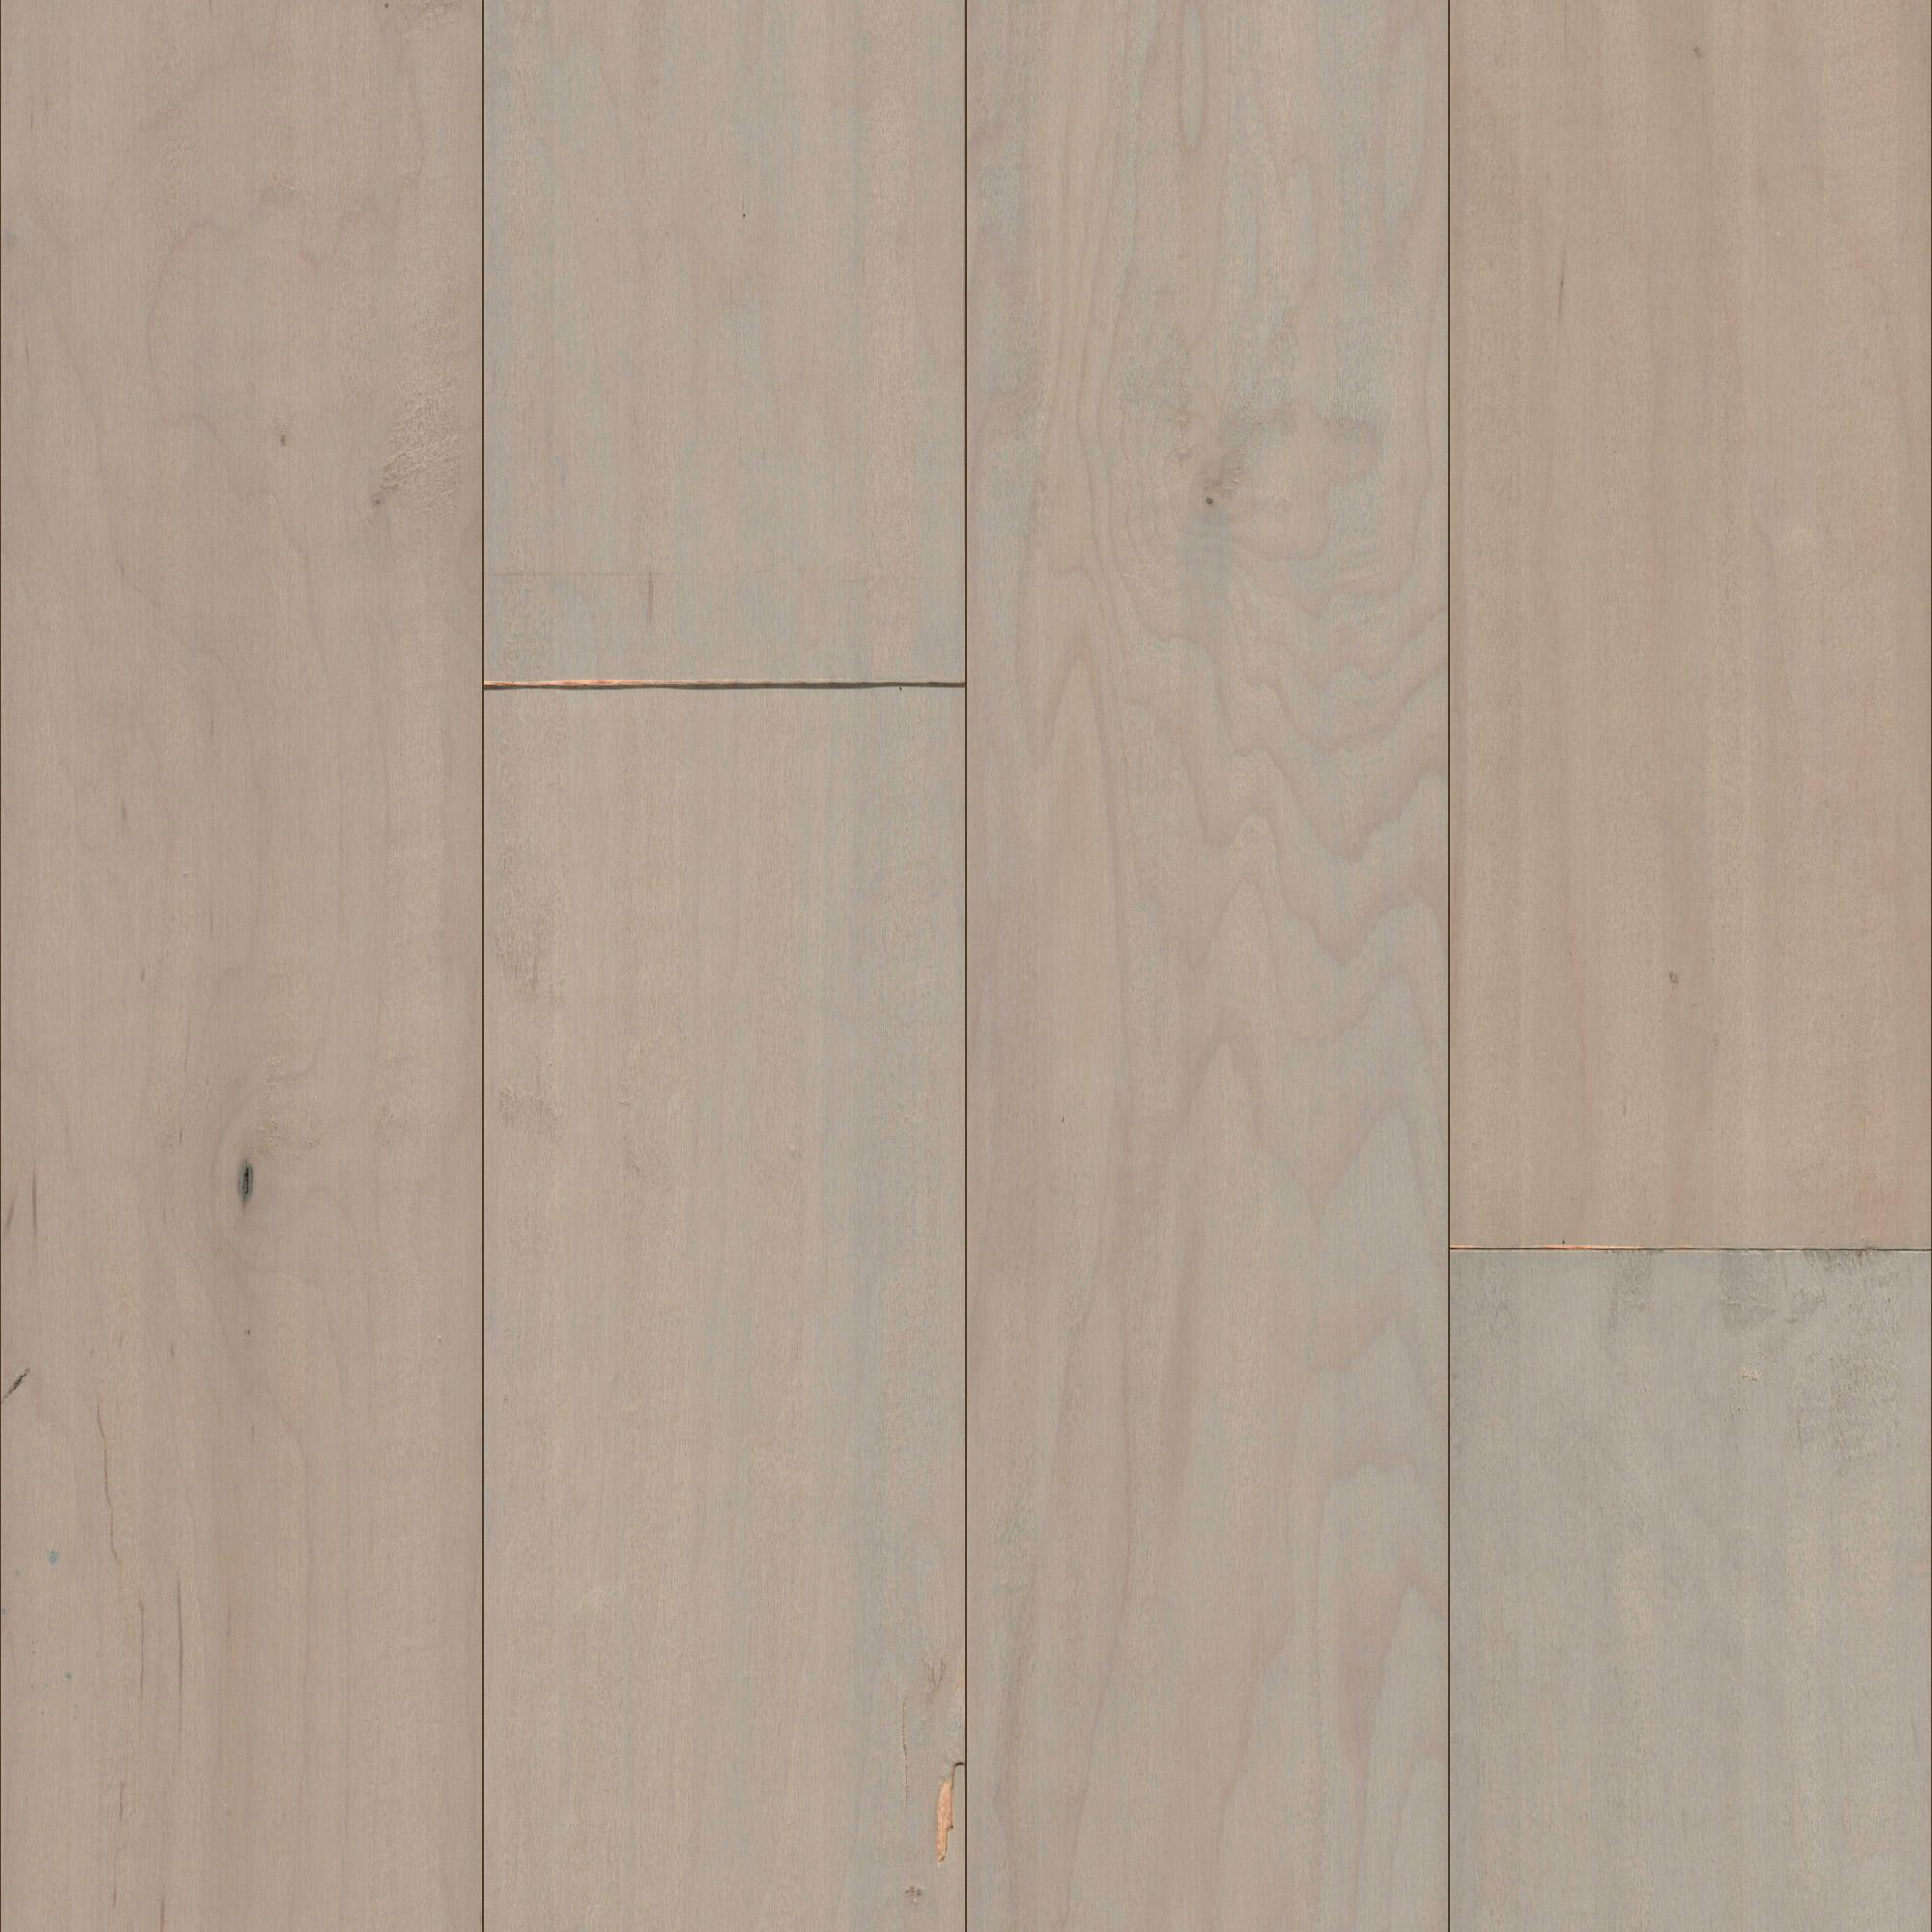 how do i clean engineered hardwood floors of mullican lincolnshire sculpted maple frost 5 engineered hardwood for mullican lincolnshire sculpted maple frost 5 engineered hardwood flooring